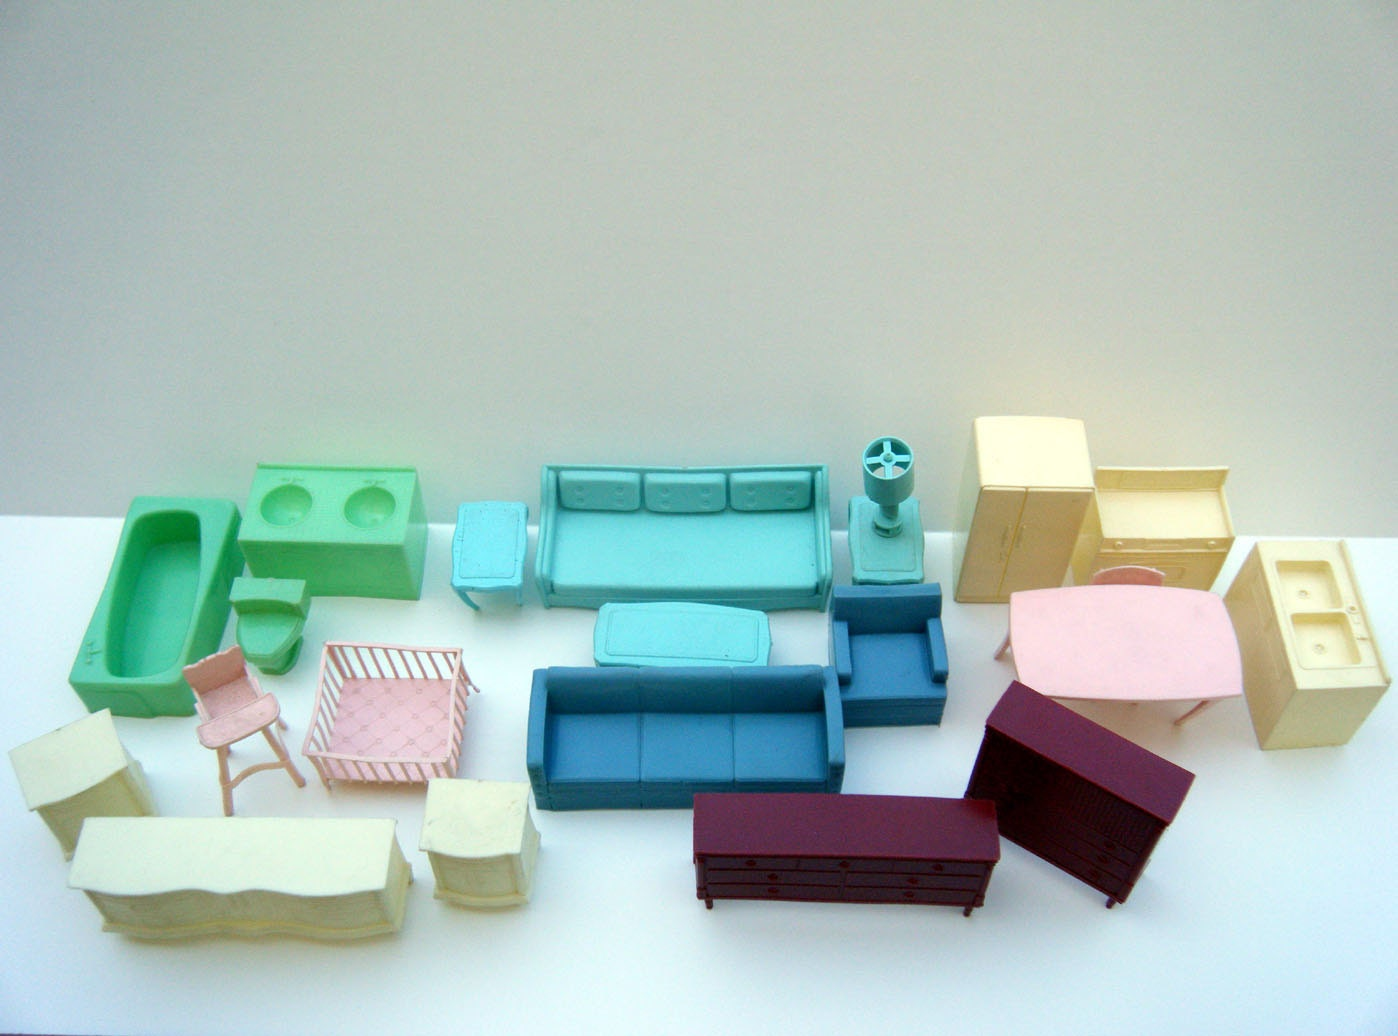 Vinatage Dollhouse Furniture Lot Of 23 Pieces Plastic